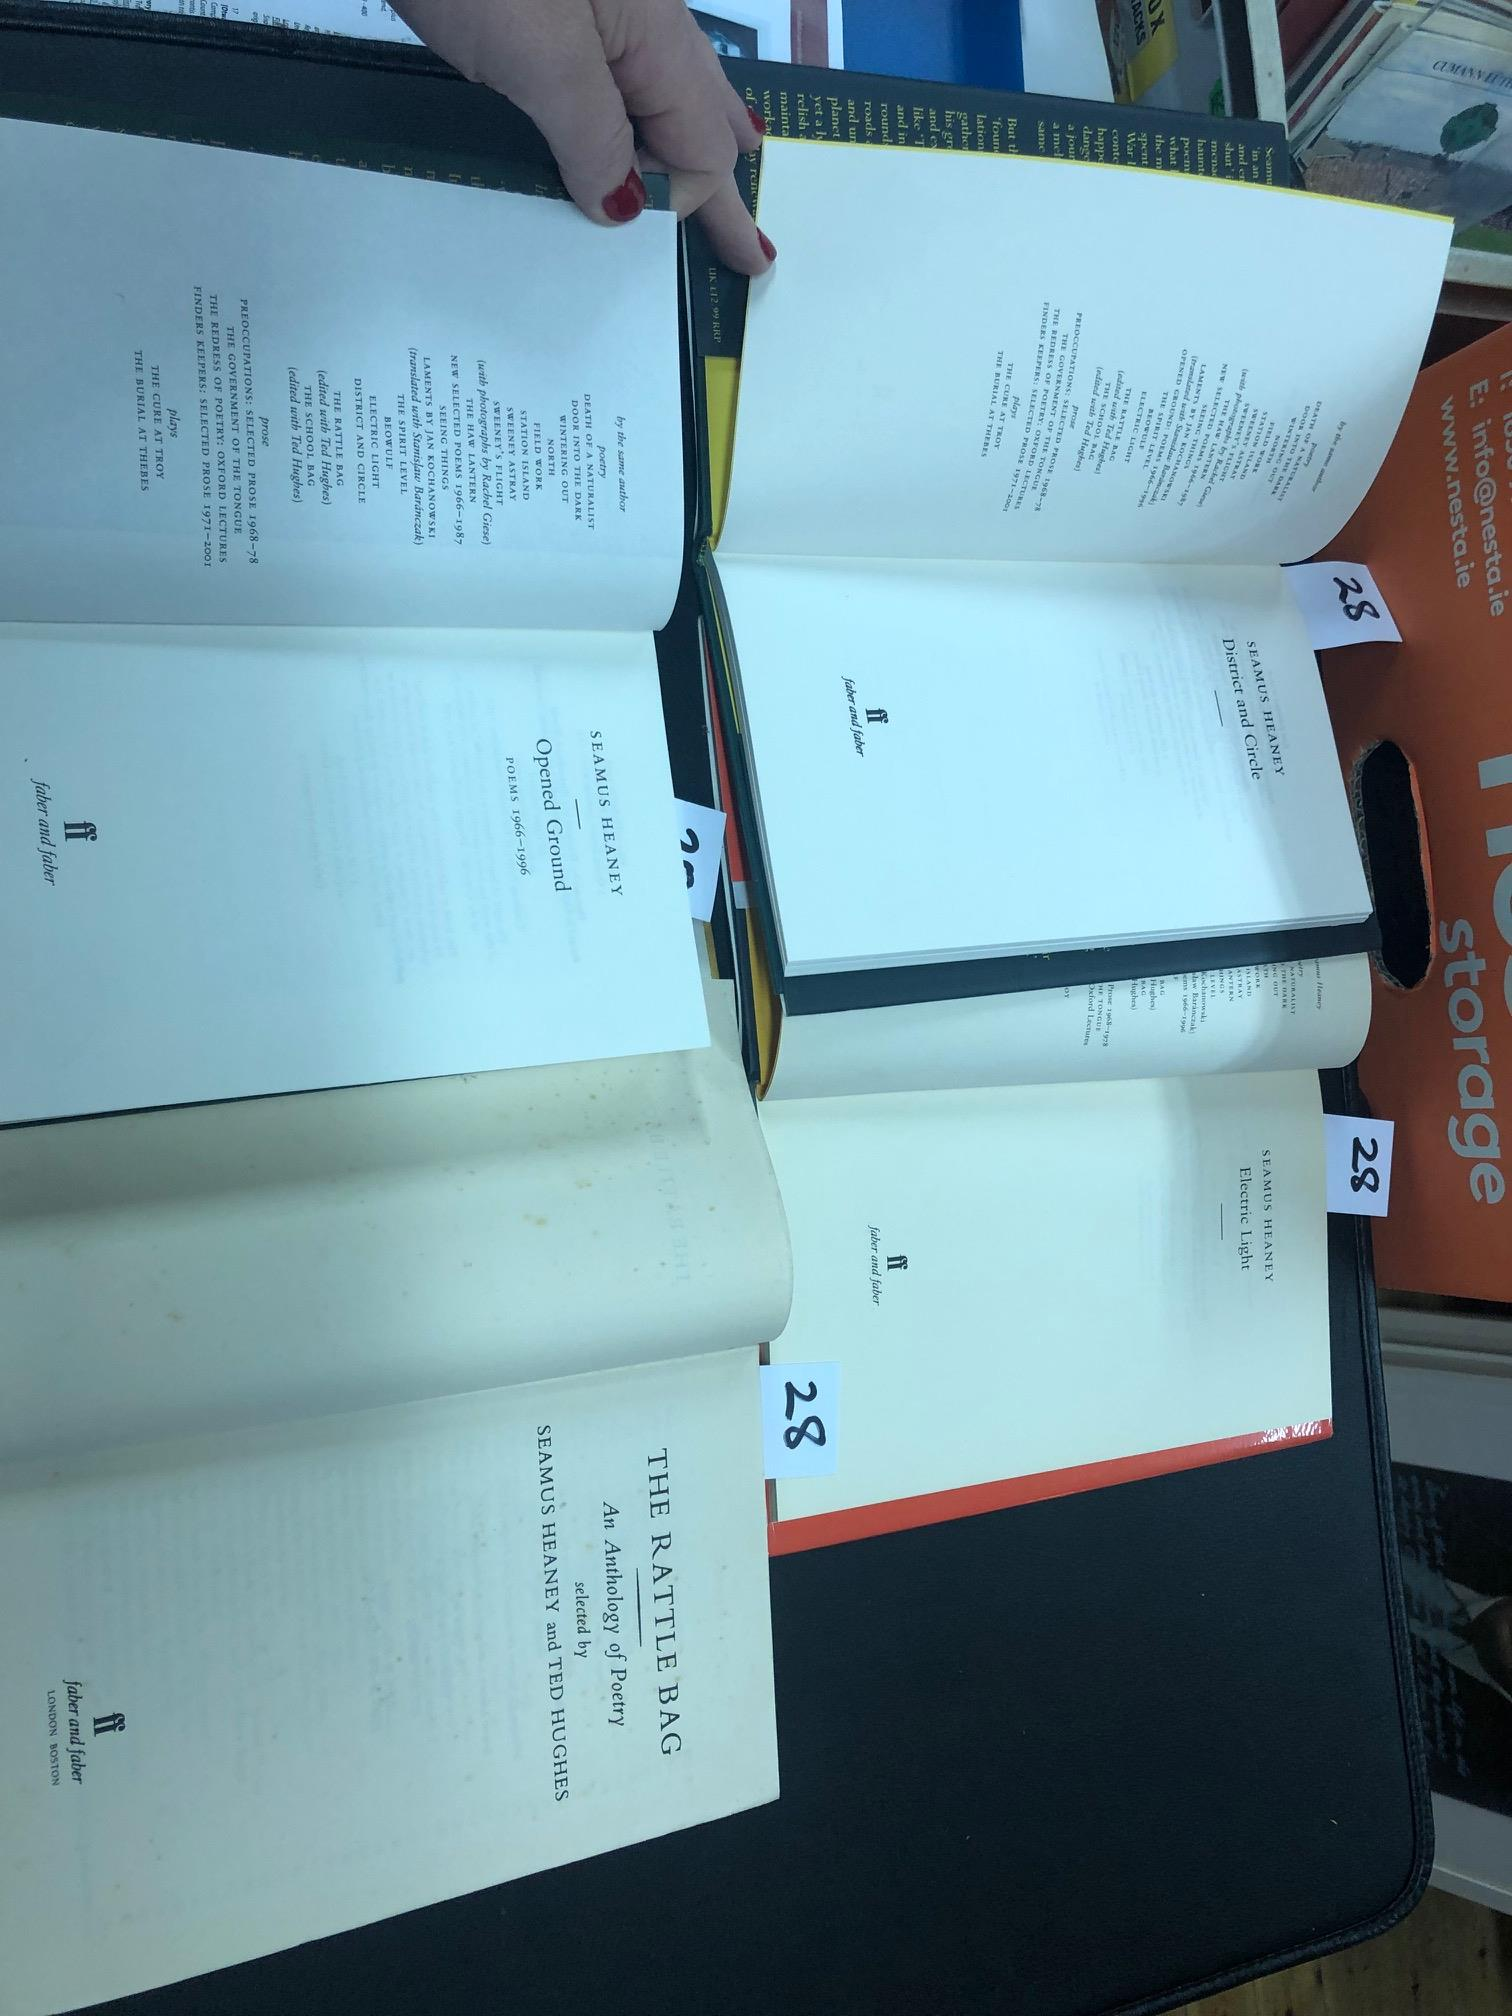 Lot 28 - Heaney (Seamus) Opened Ground, Poems 1966 - 1996, L. 1998, First Edn., boards; Electric Light, L.